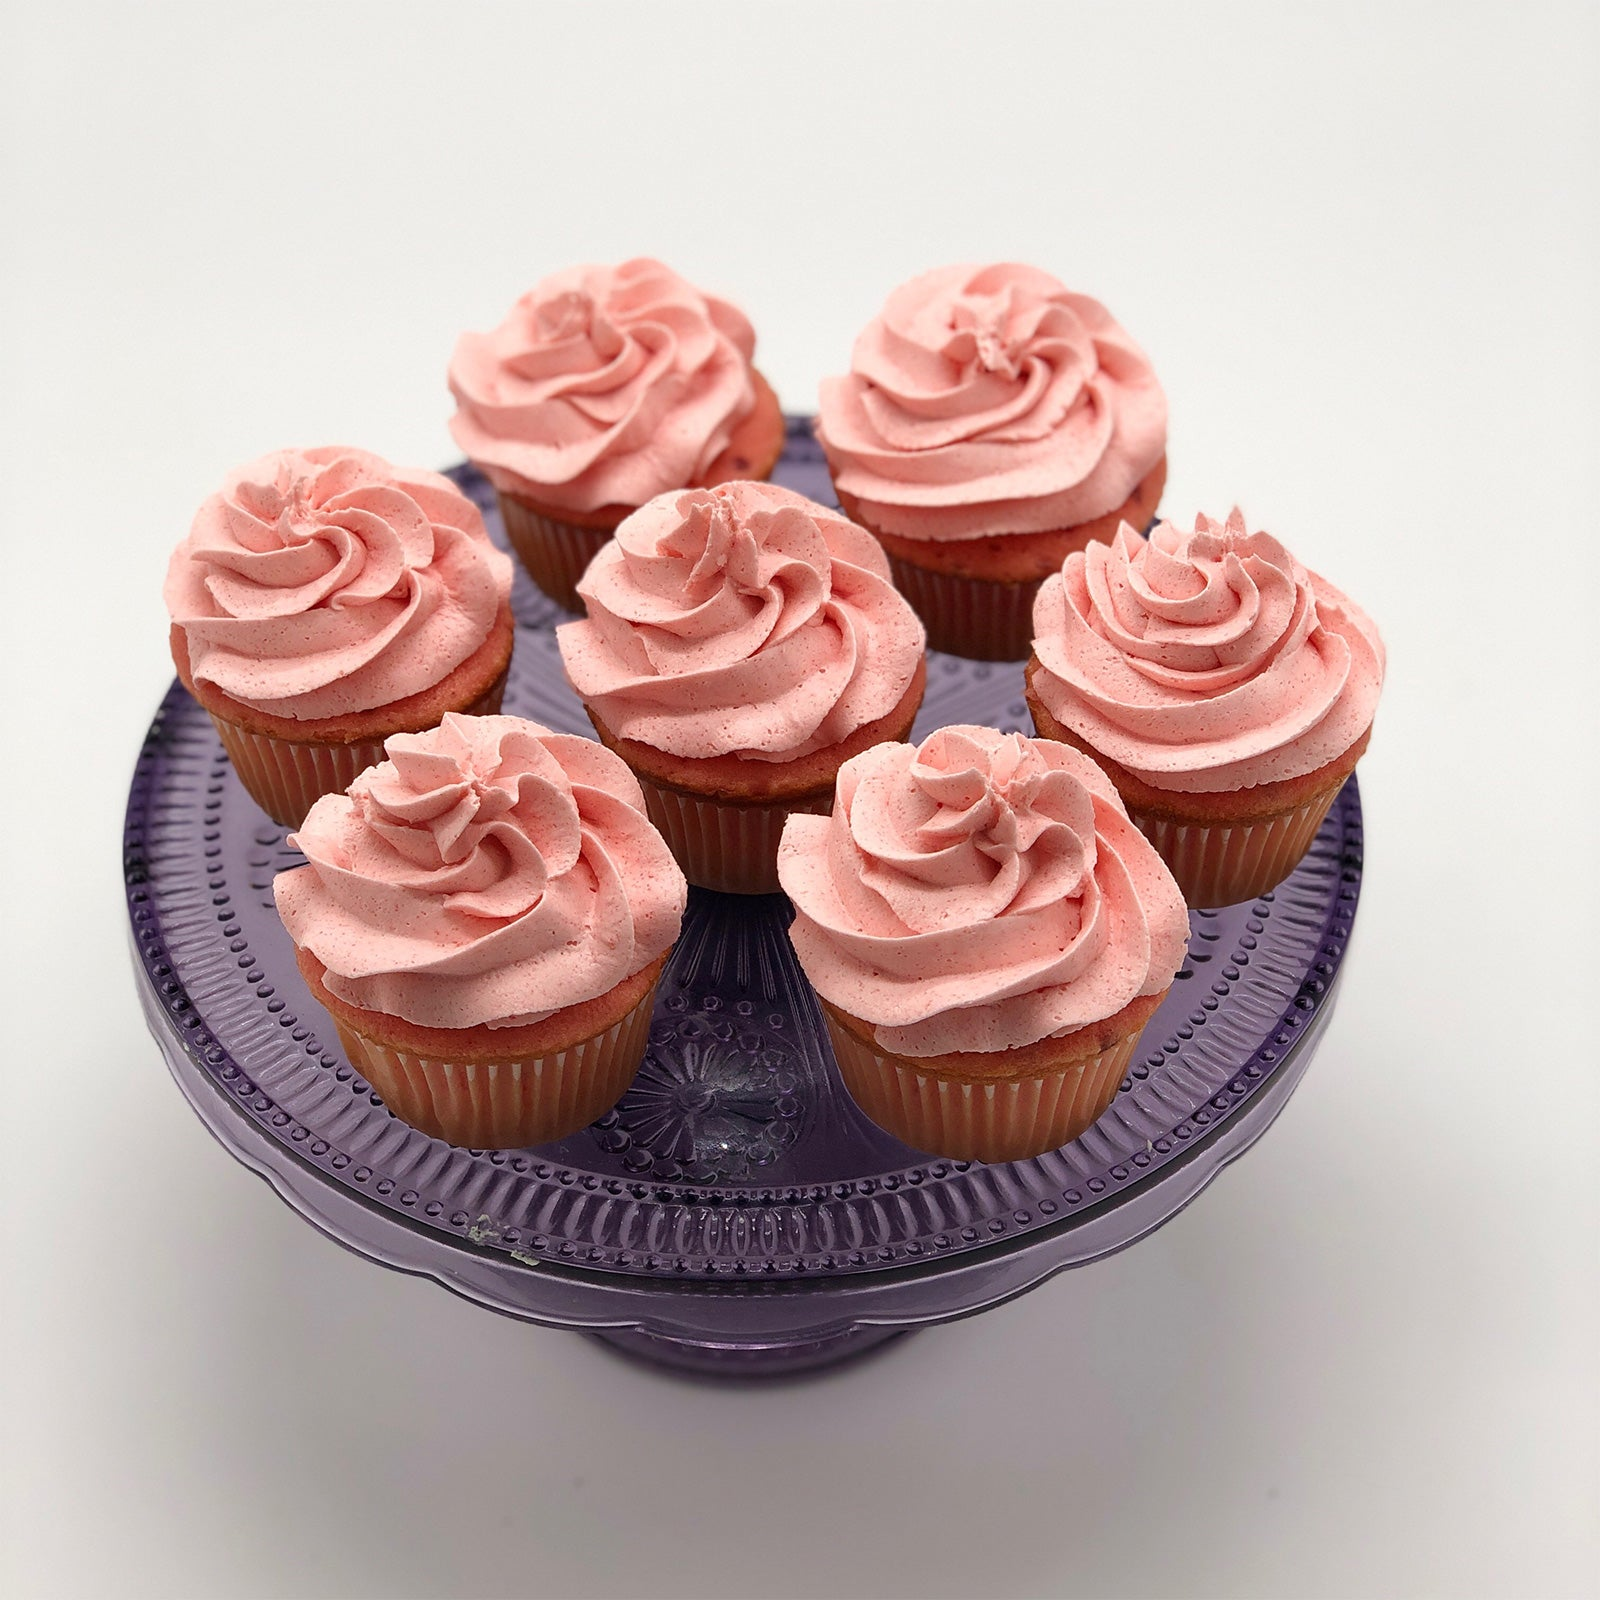 CakeDelights Strawberry Cupcakes